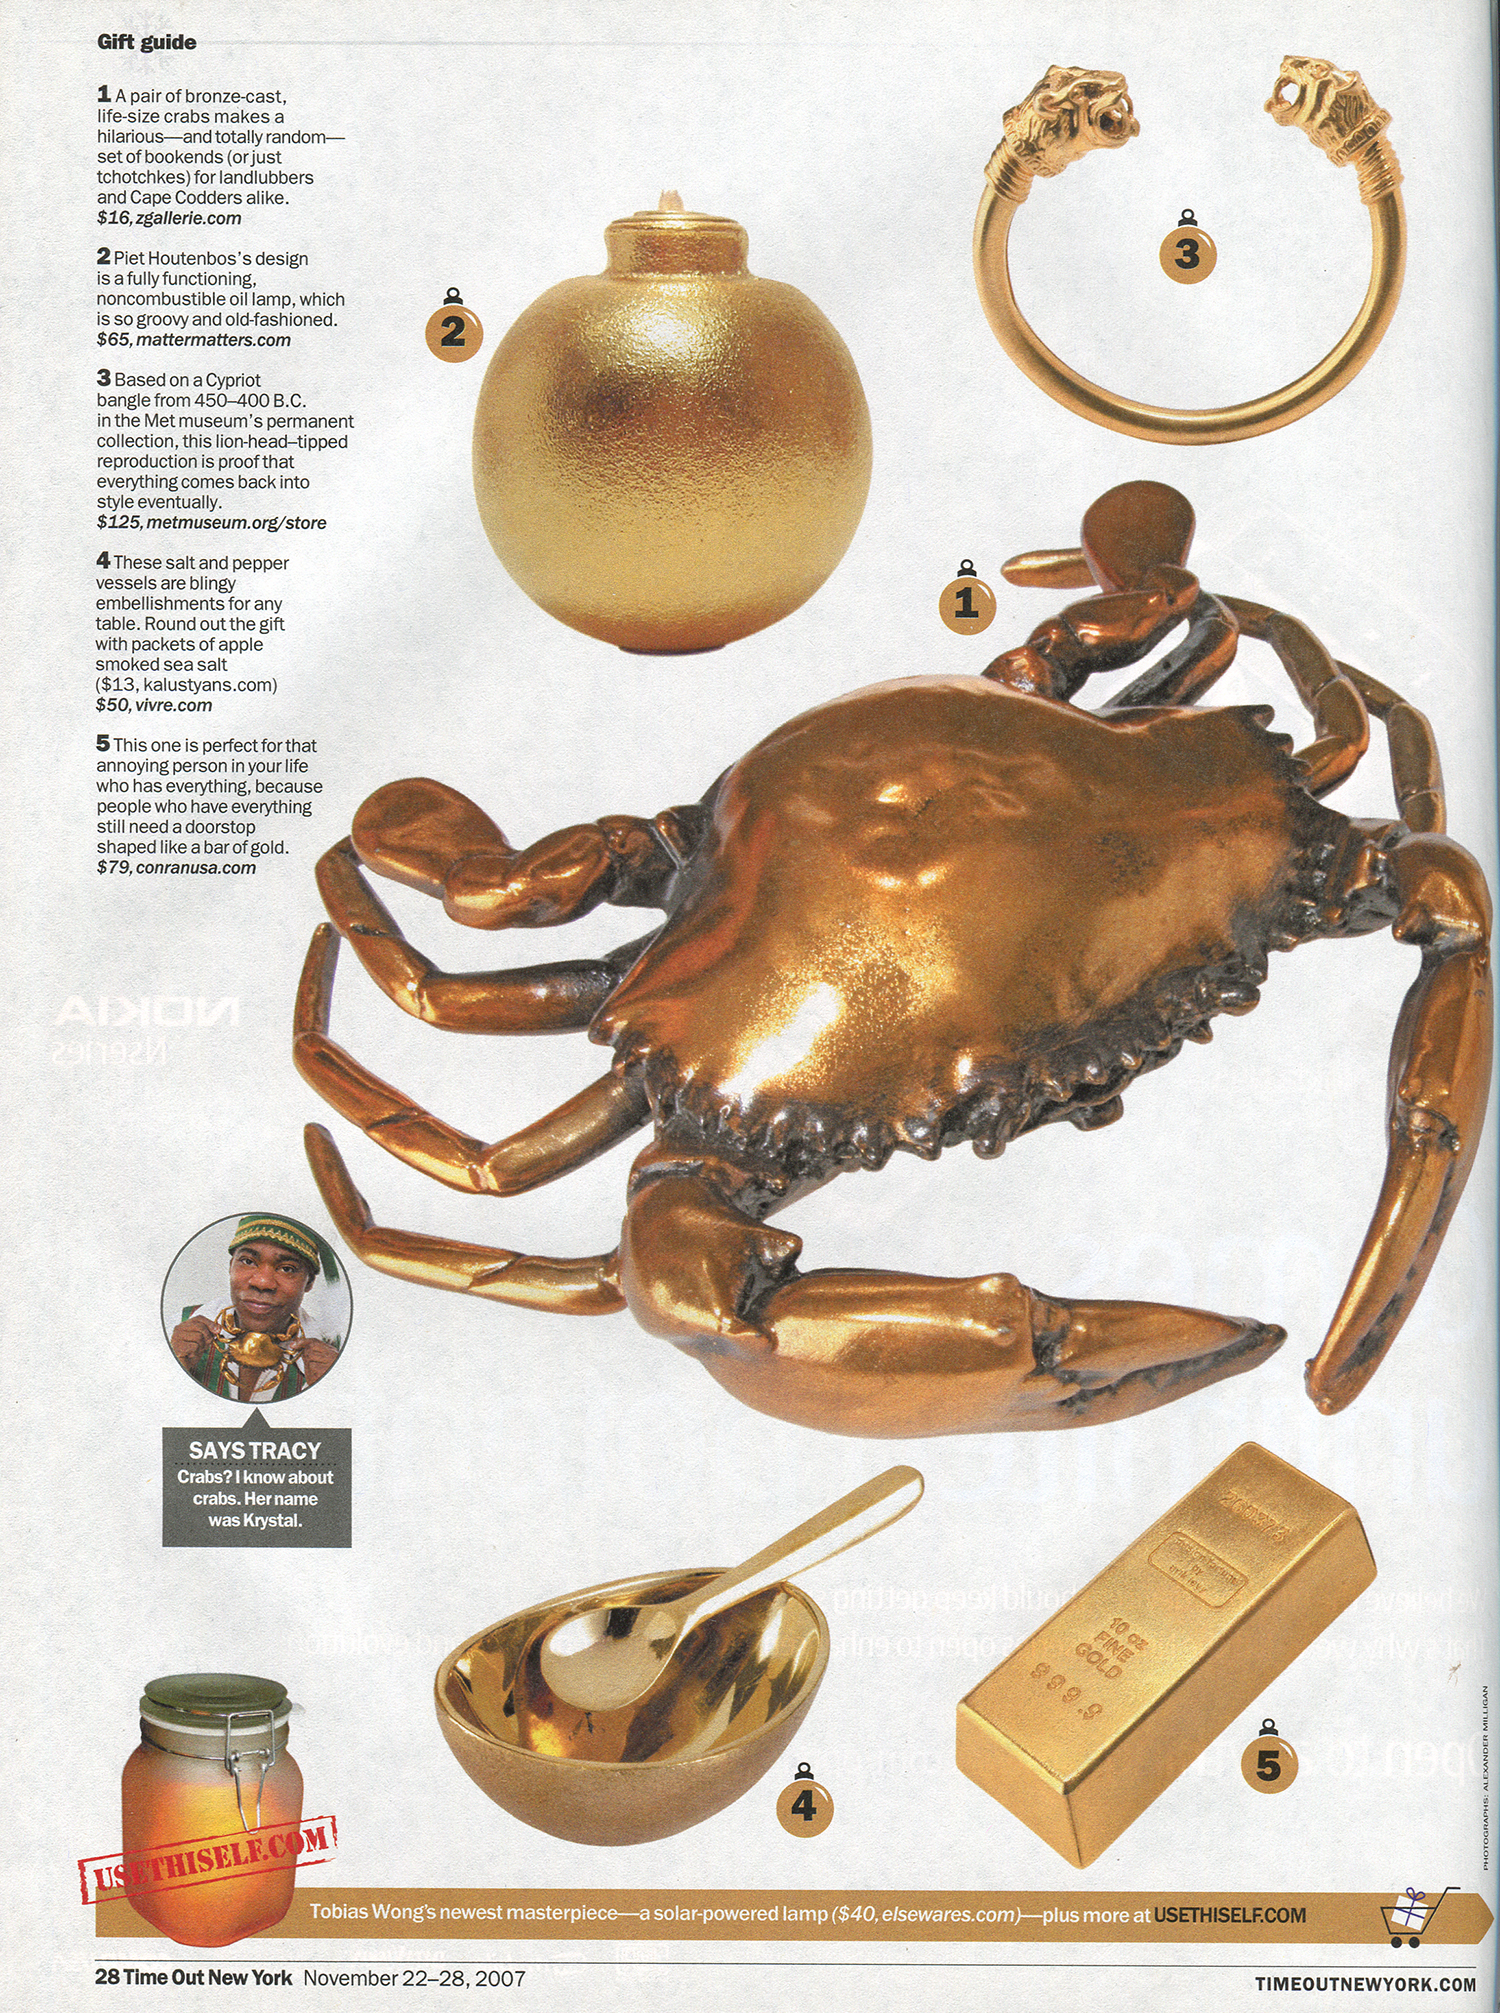 Gold Grenades!  Tracy Morgan loves everything gold and makes some suggestions for Time Out New York's holiday gift guide.